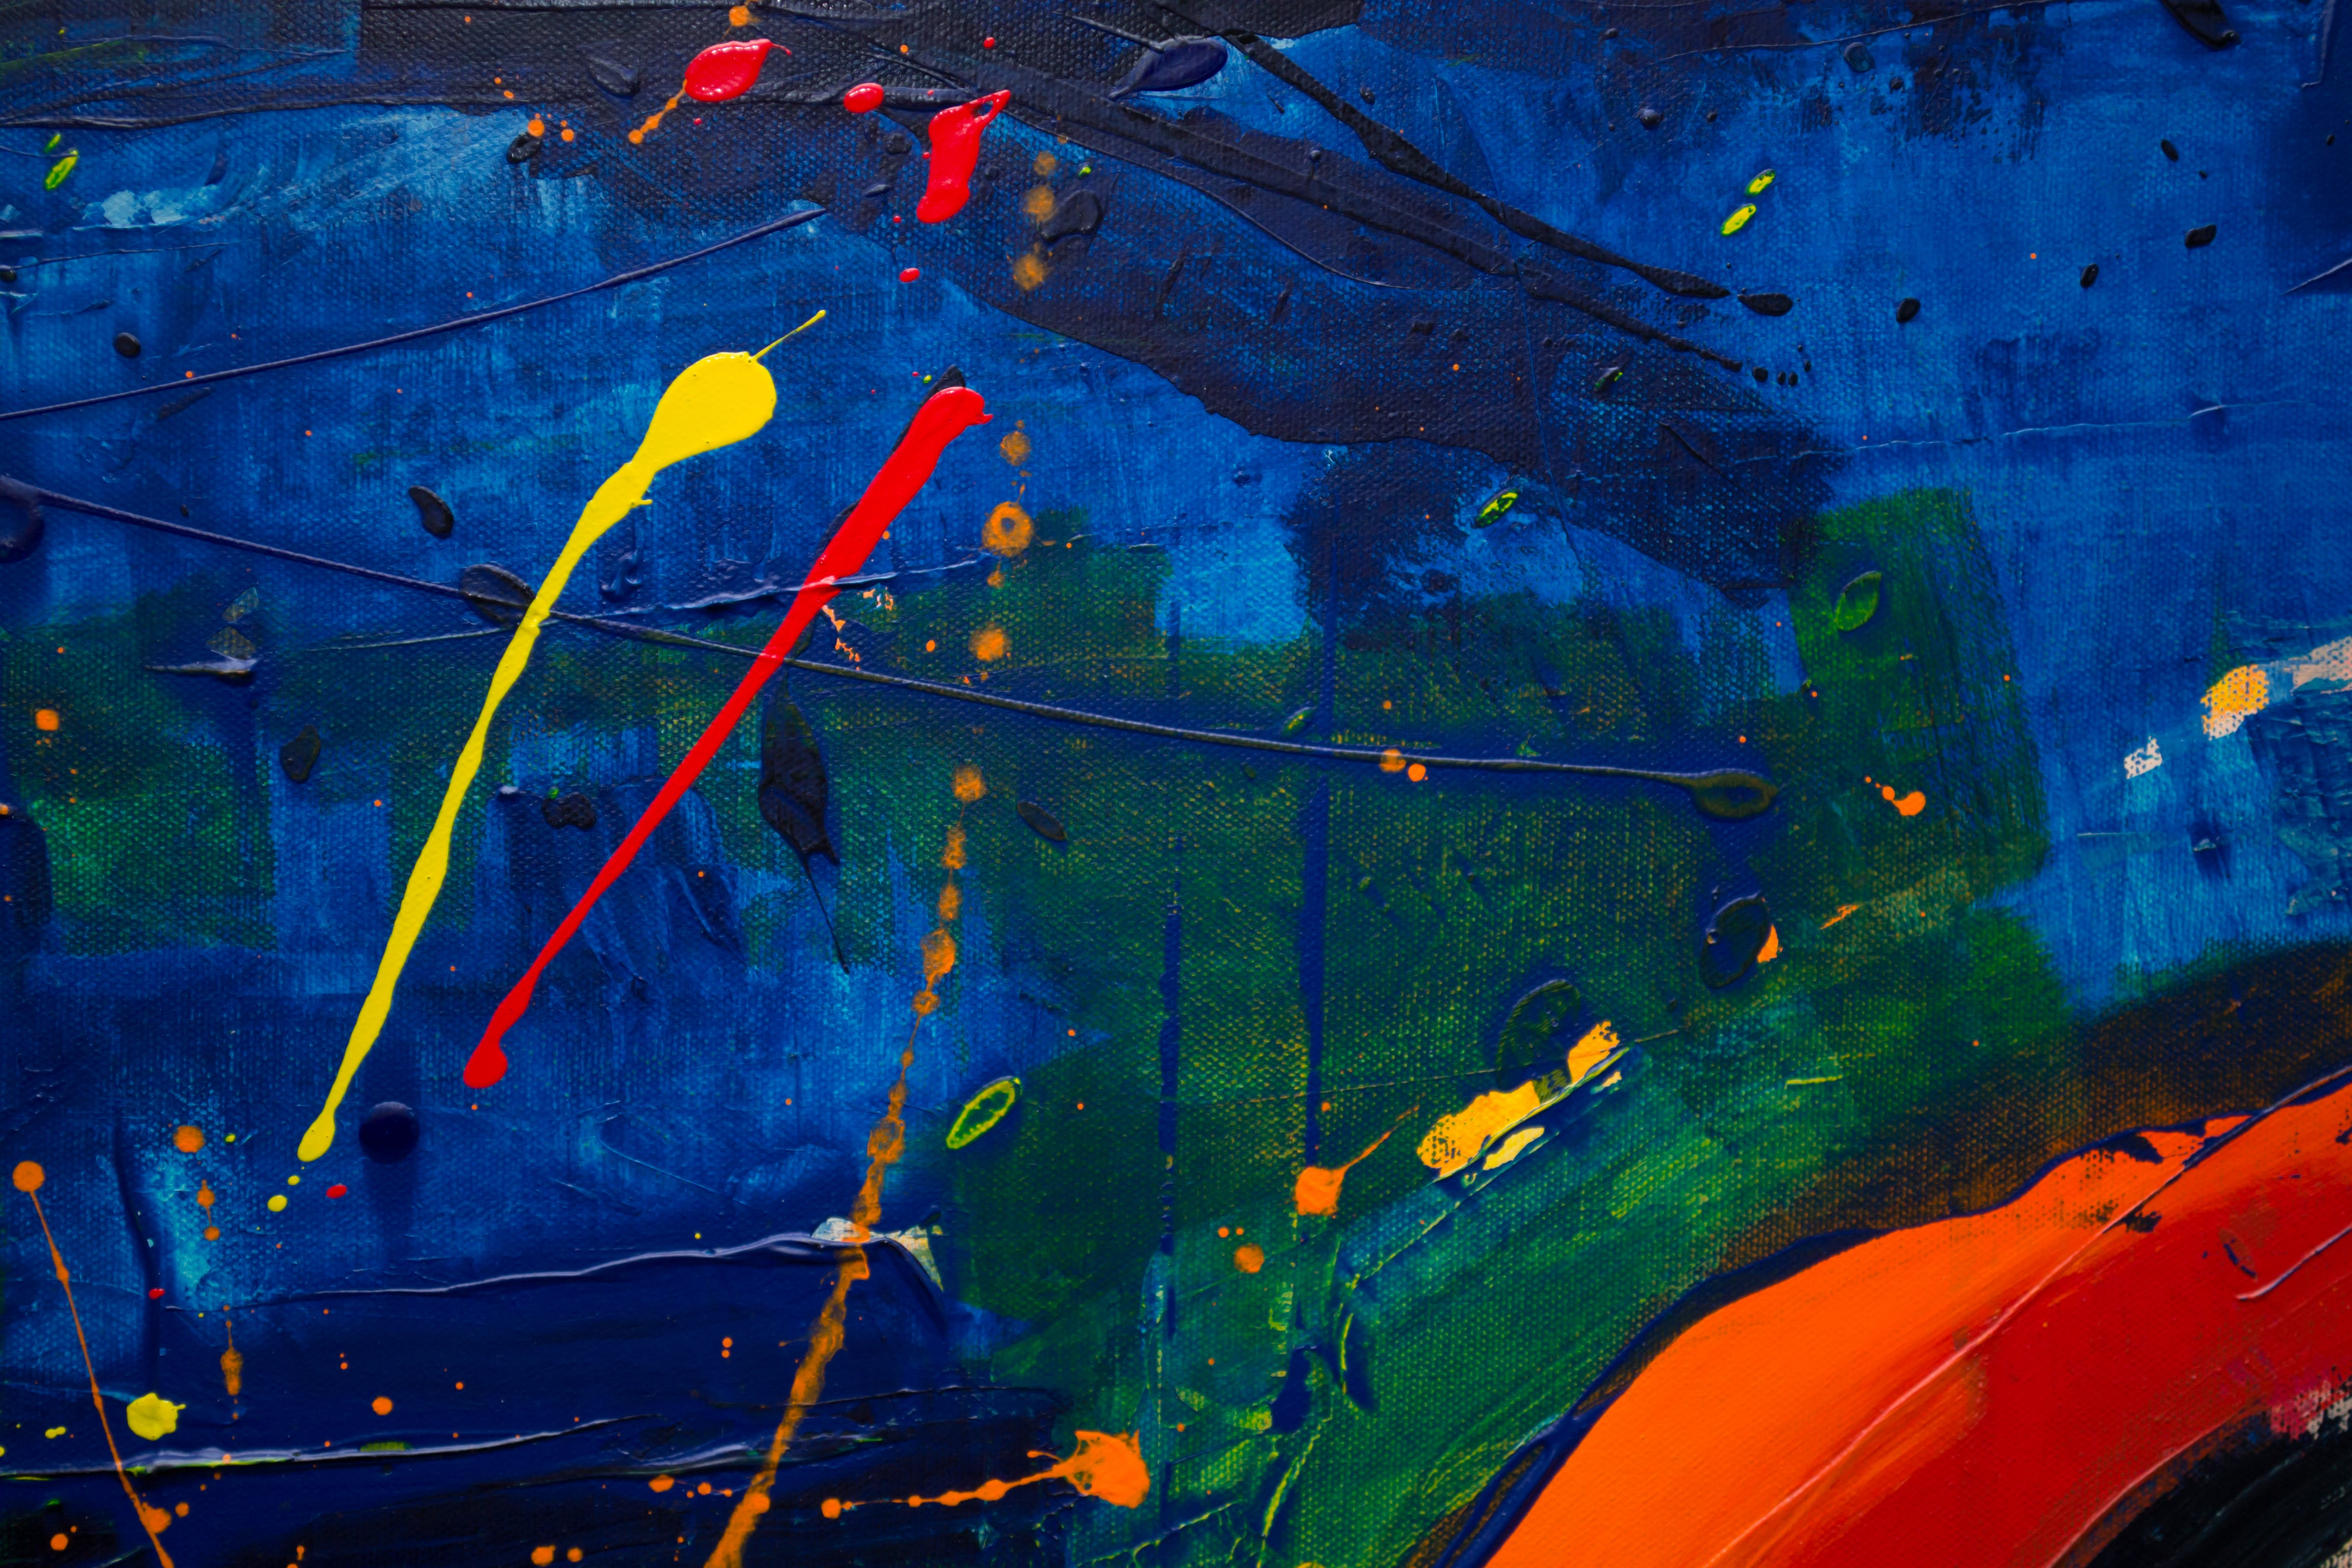 Blue, Green, Orange, and Yellow Abstract Painting